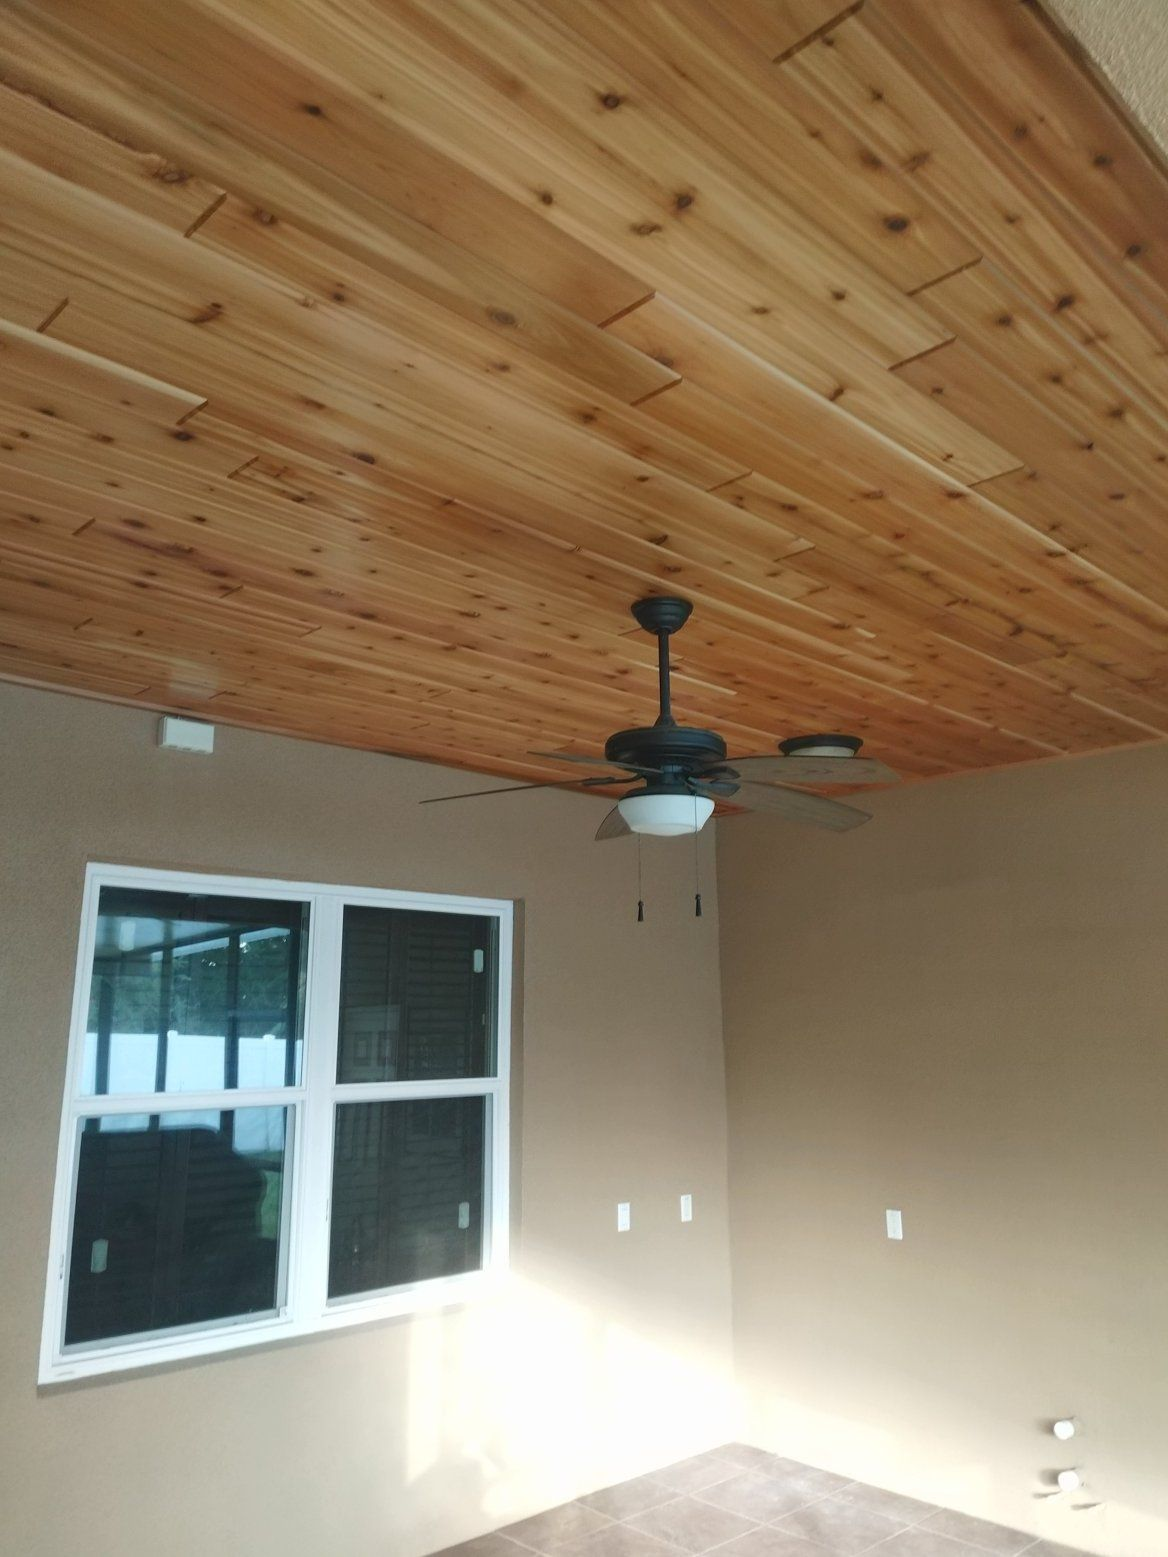 Cedar Tongue And Groove Ceiling Tongue And Groove Ceiling Tongue And Groove Walls Cedar Tongue And Groove